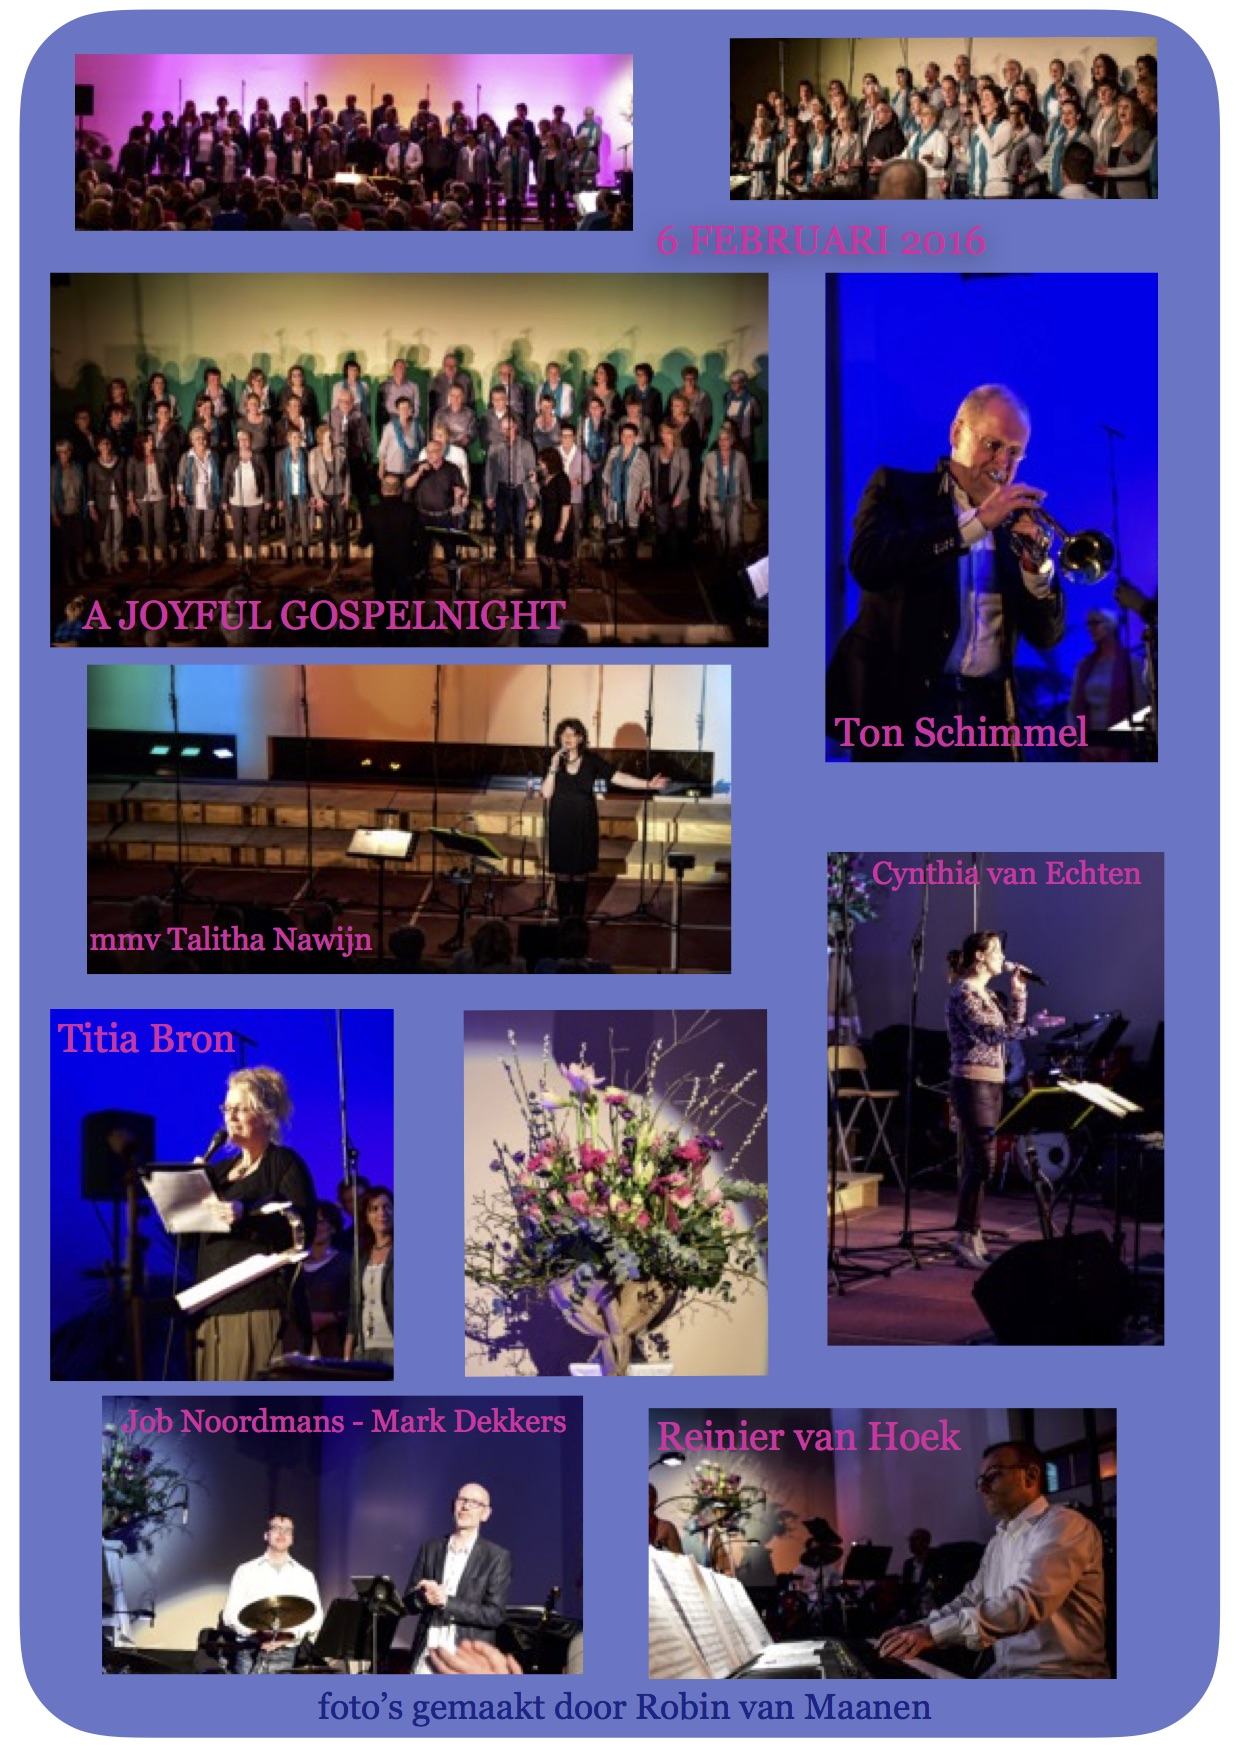 fotocollage gospelnight 2